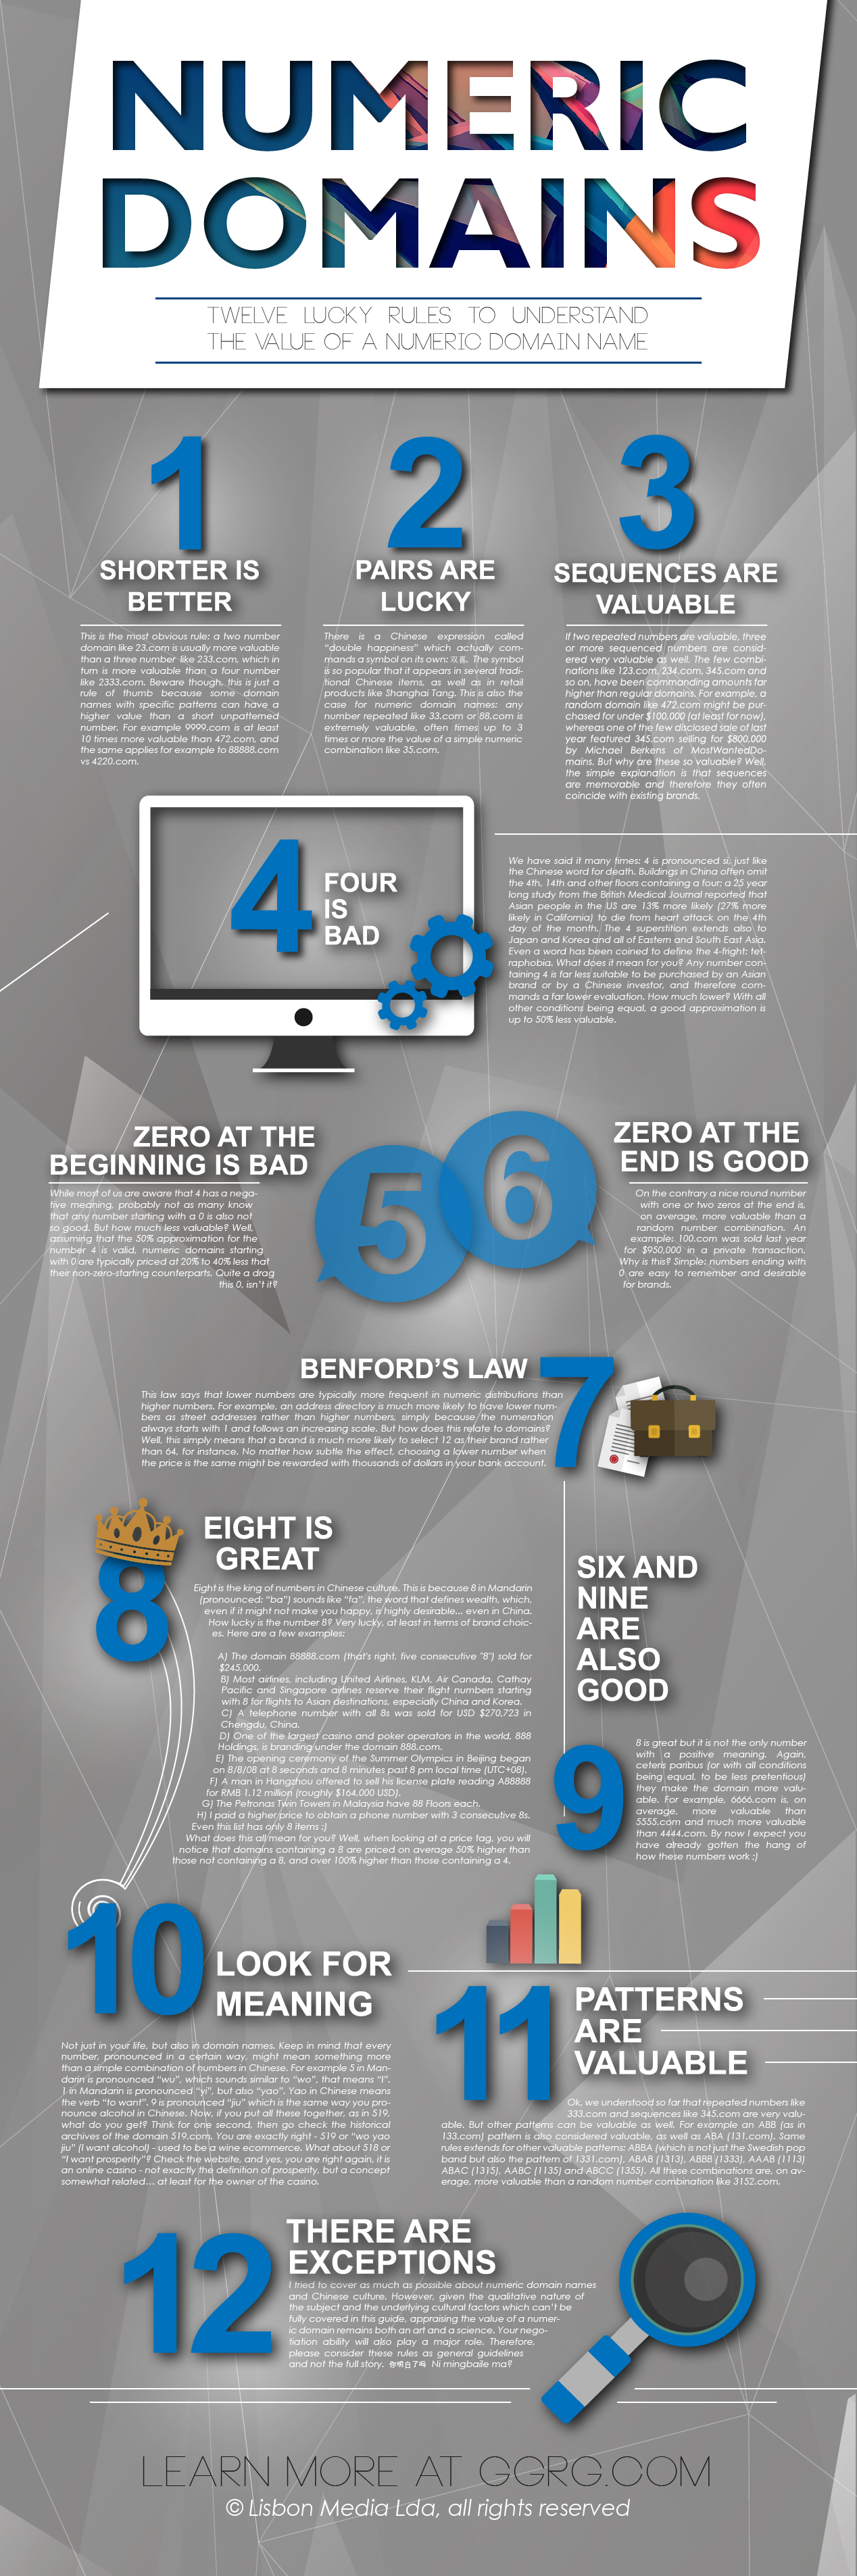 "Infographic: ""The 12 Lucky Rules to Understand the Value of a Numeric Domain Name"""